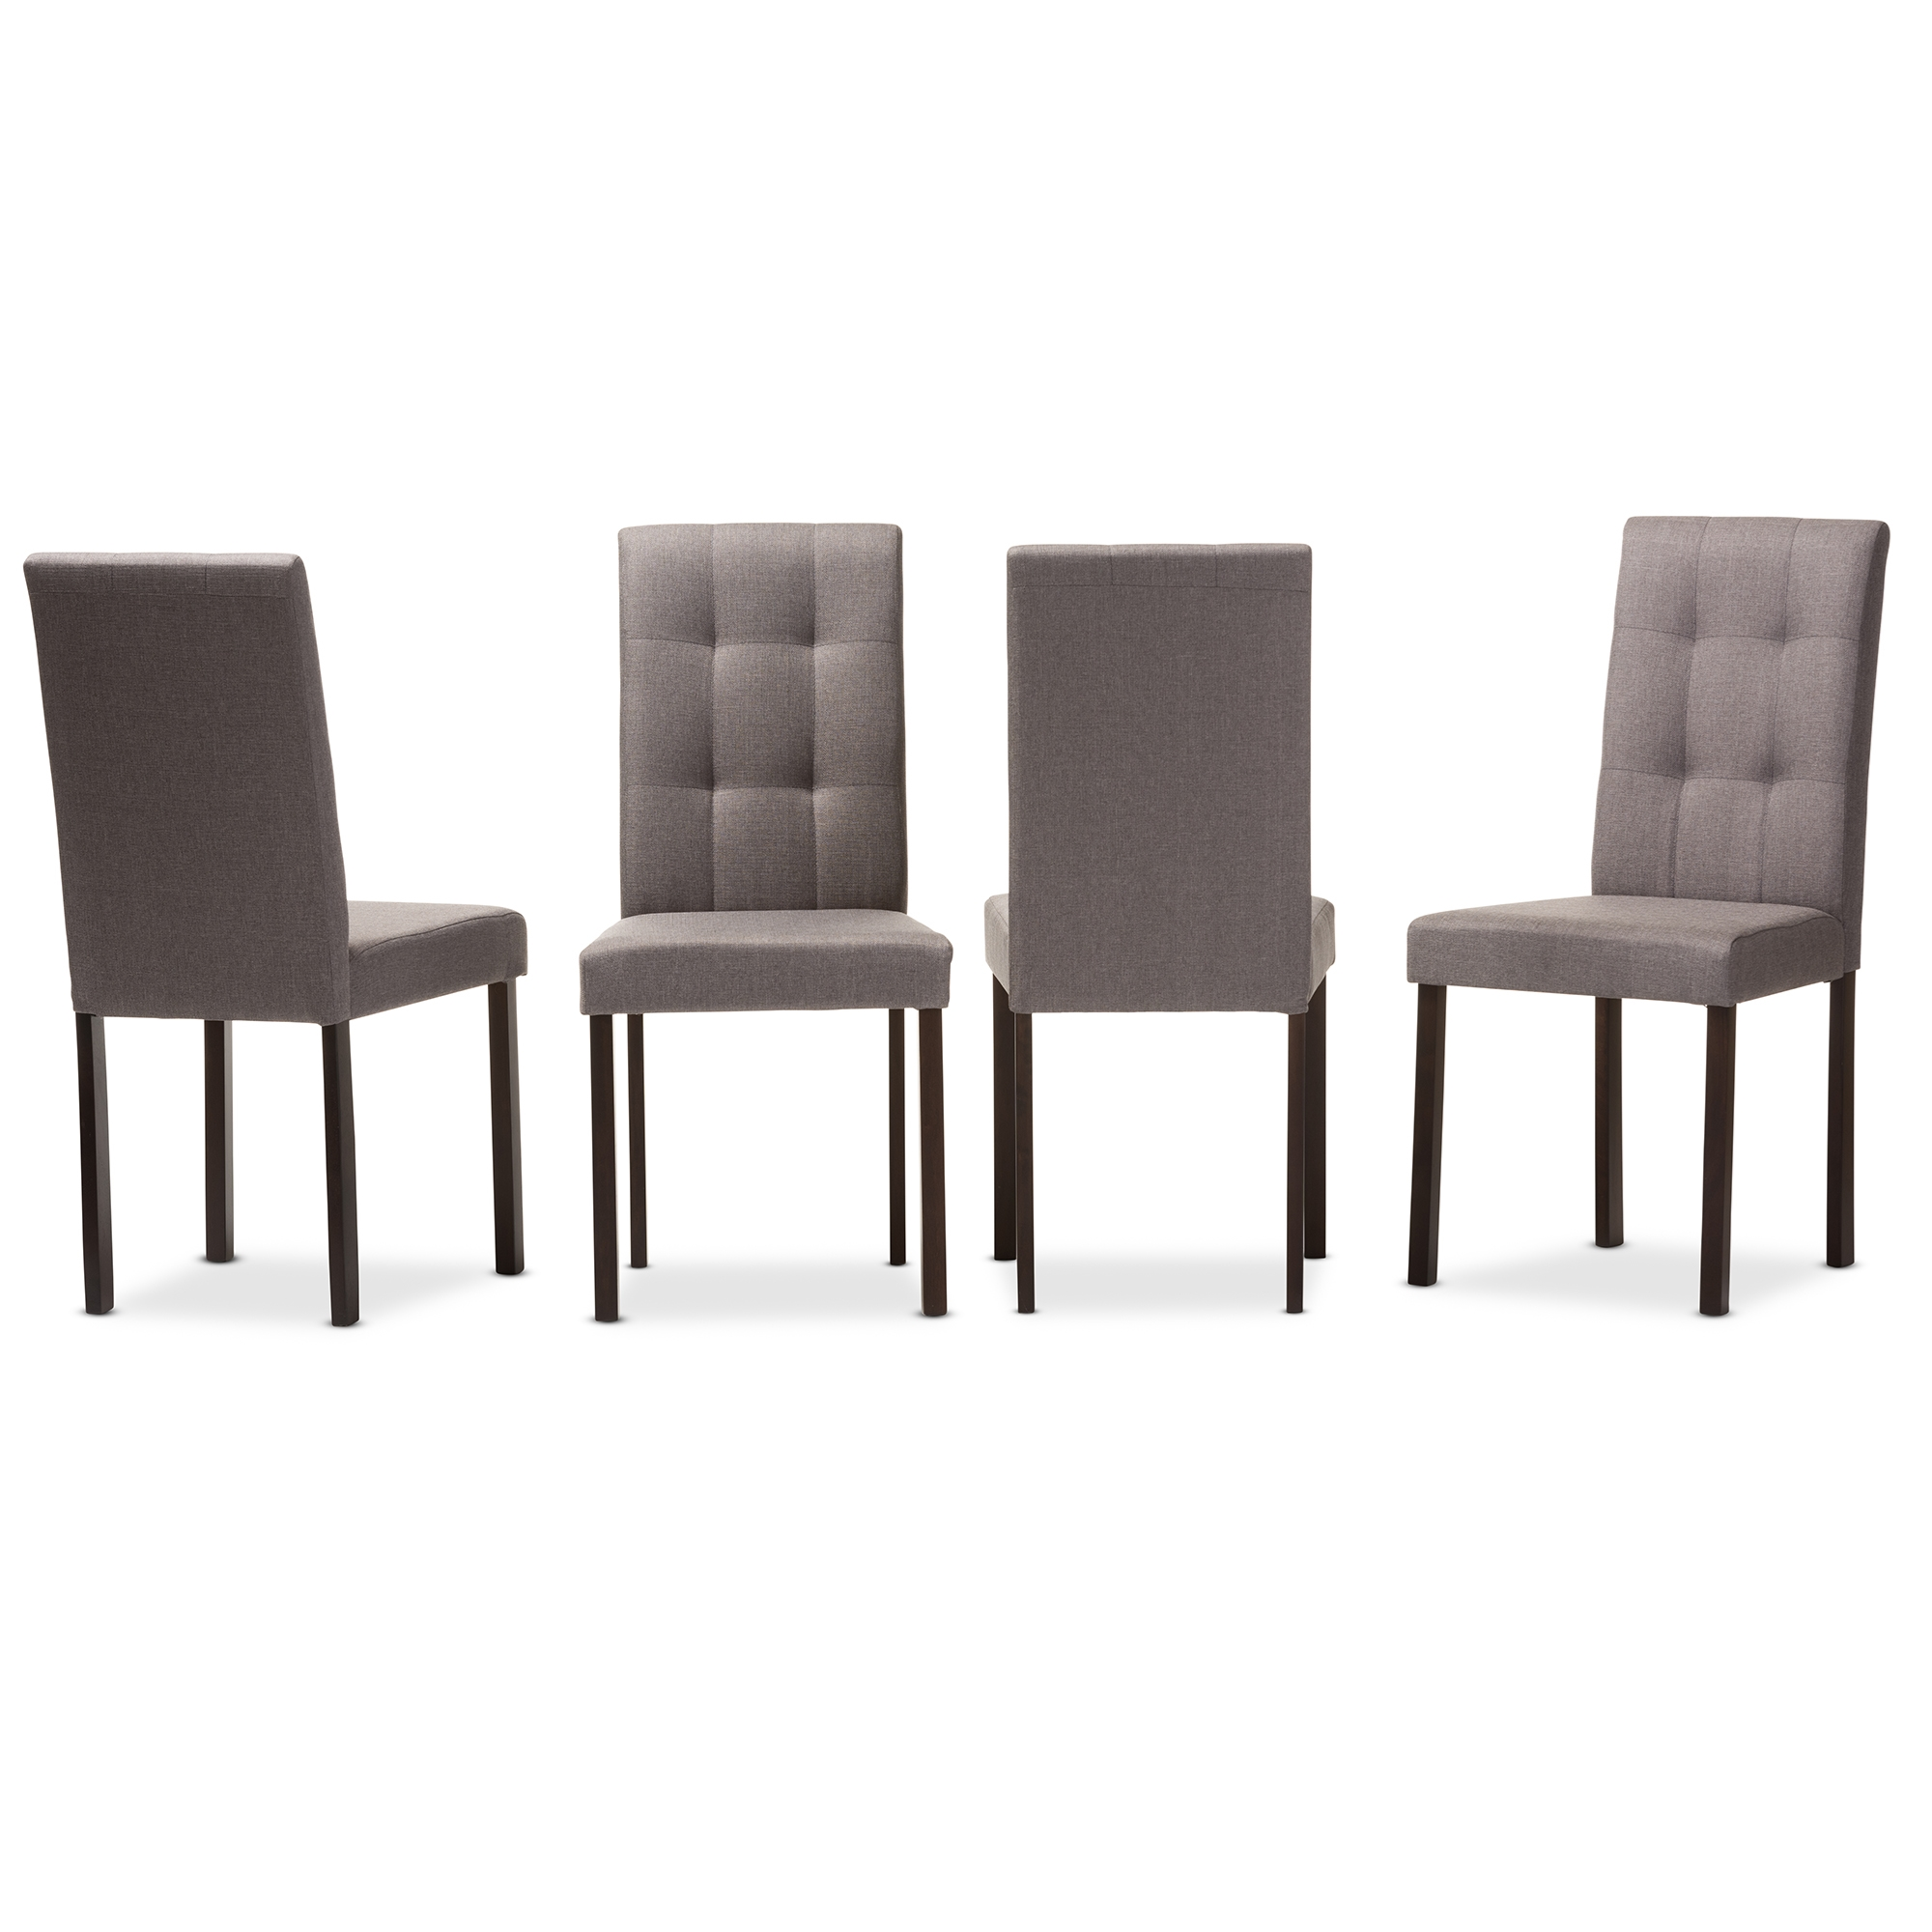 Dining Room Chair Fabric Baxton Studio Andrew Modern And Contemporary Grey Fabric Upholstered Grid Tufting Dining Chair